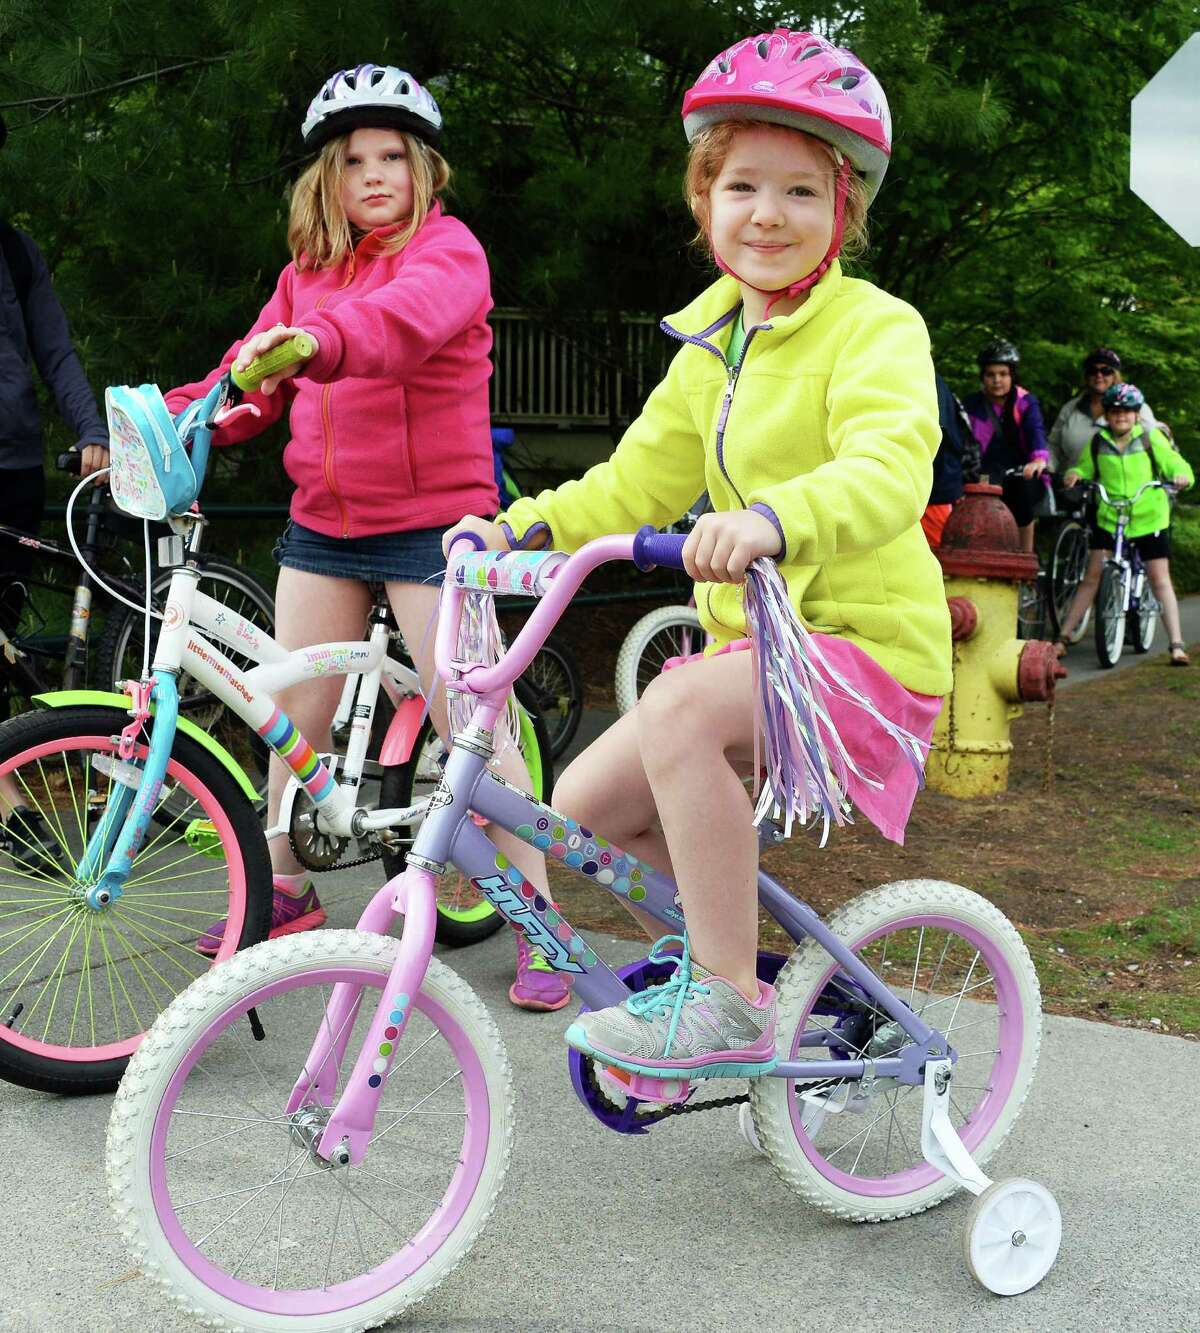 Lake Avenue Elementary School students Rachel Haarman, left, 8, and Abigail Norsworthy, 5, bicycle to school on National Bike to Work Day Friday May 15, 2015 in Saratoga Springs, NY. (John Carl D'Annibale / Times Union)